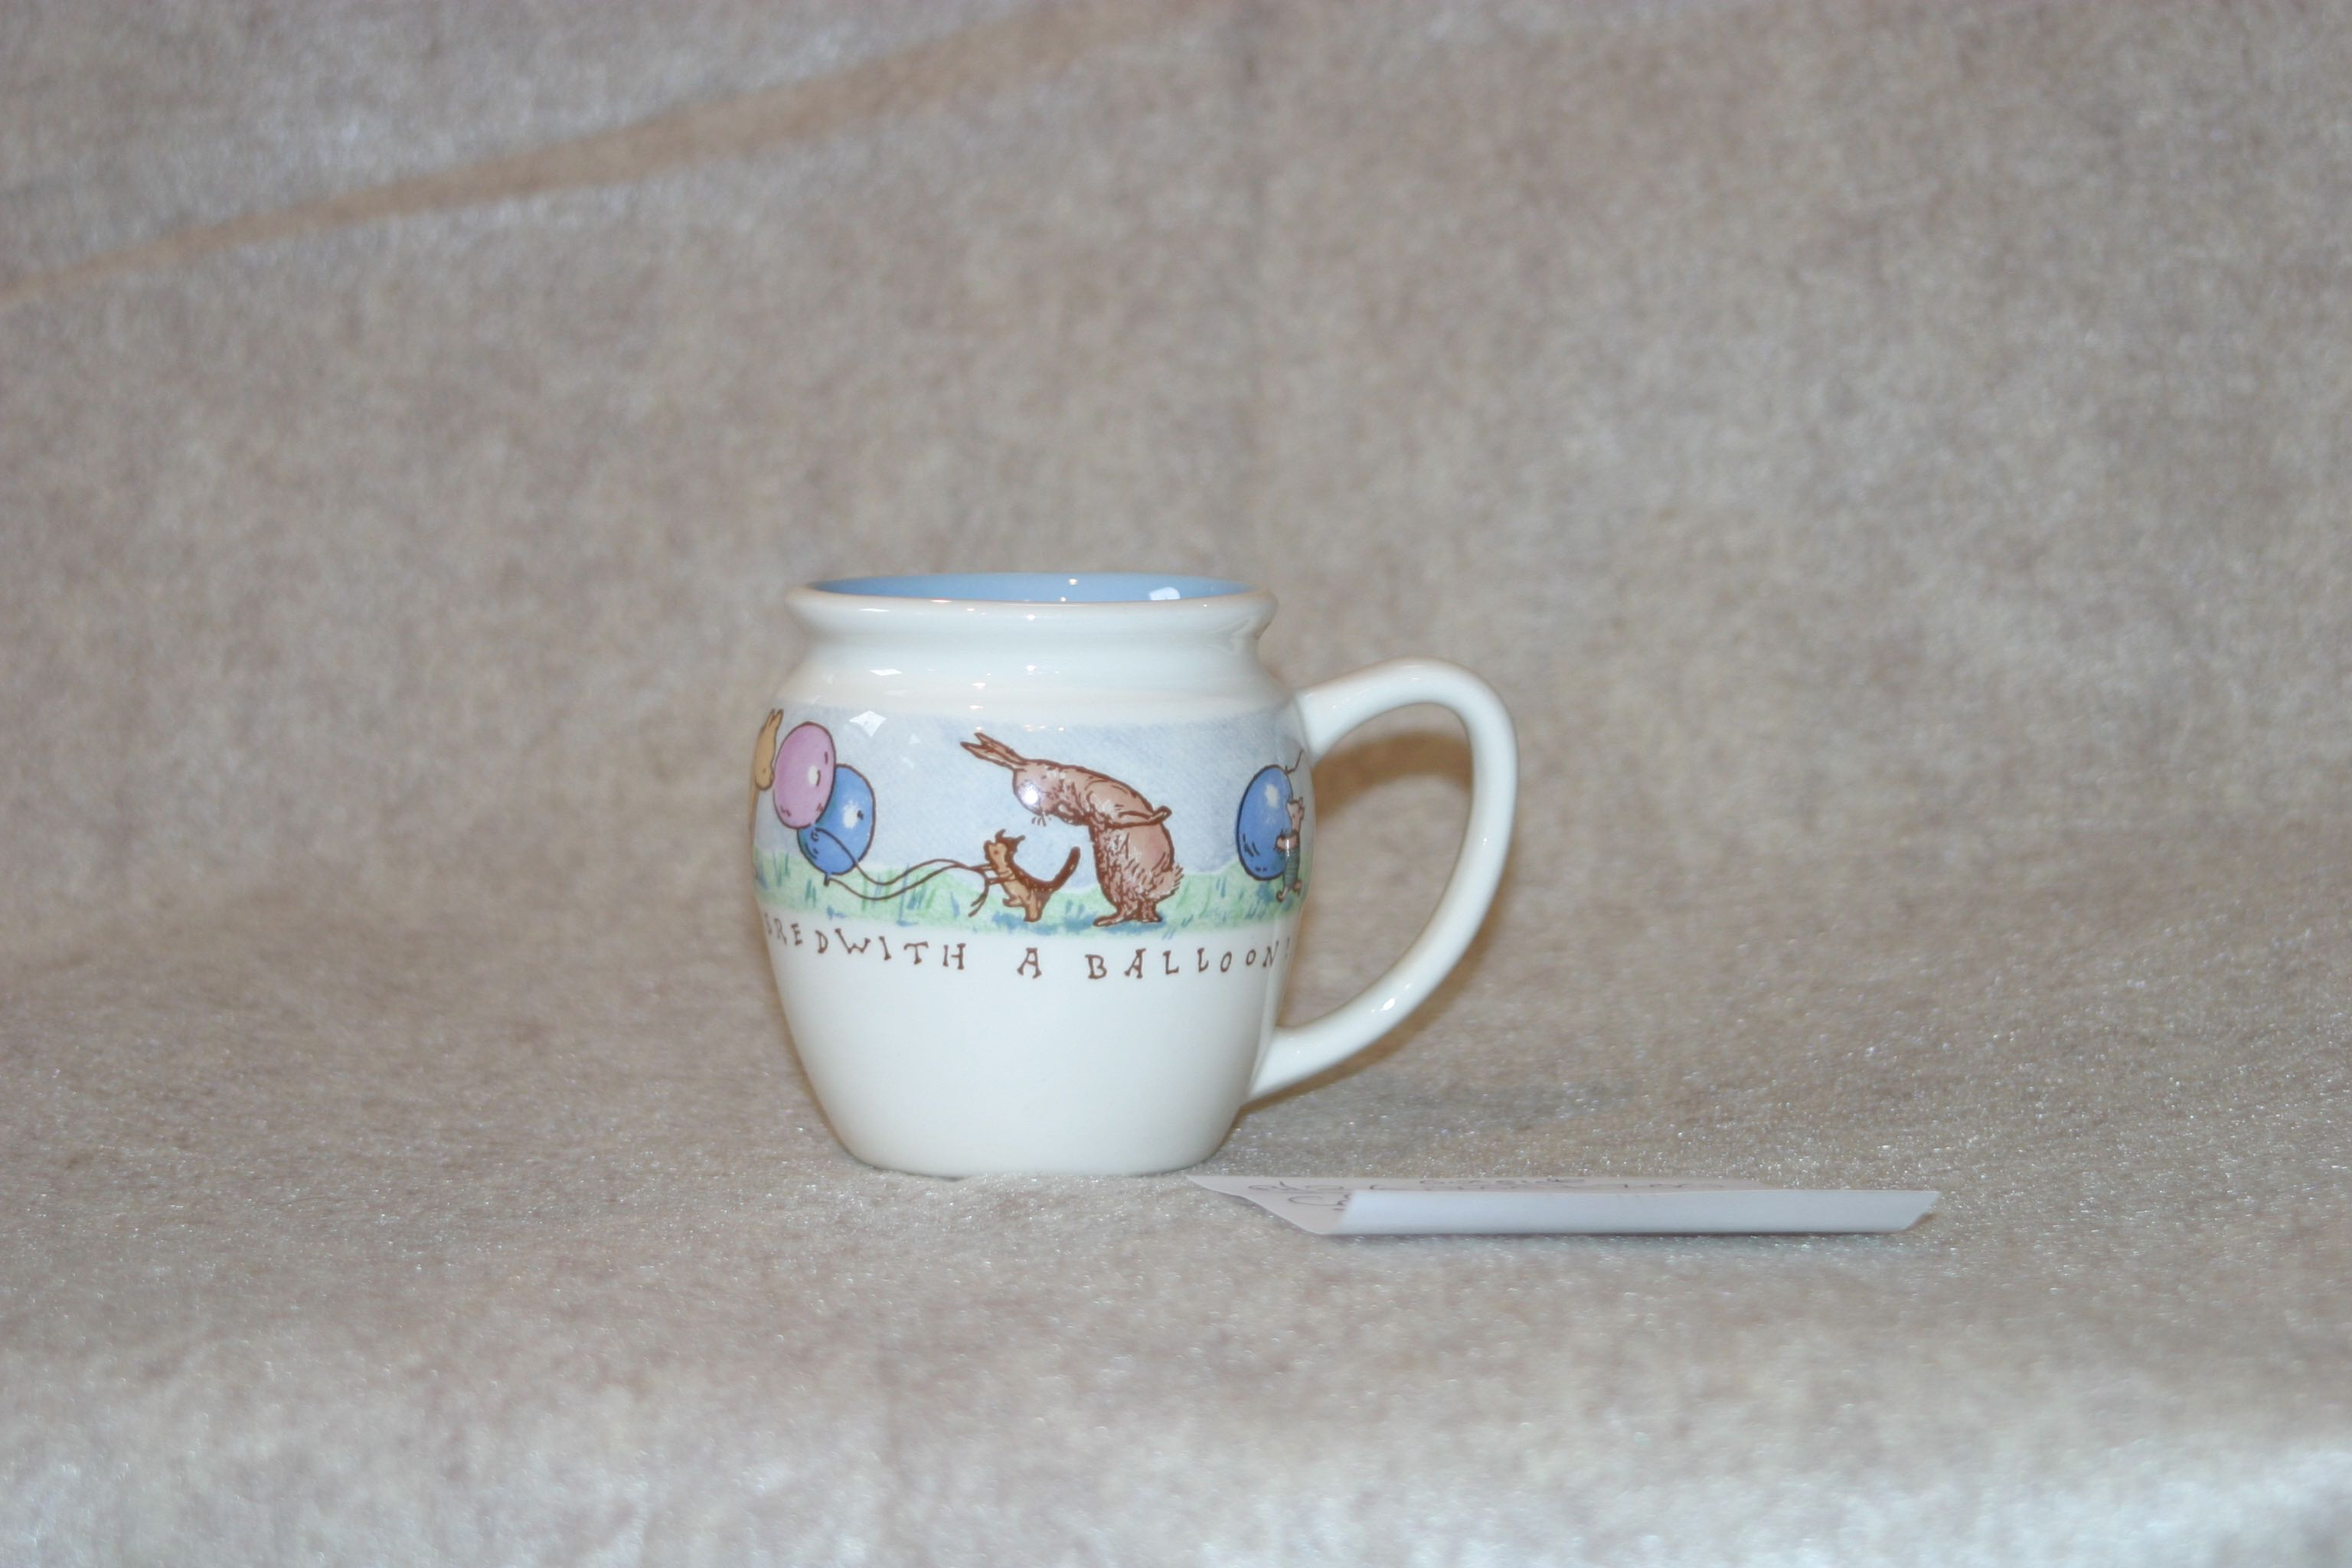 Winnie The Pooh (c. 2000) Disney Baby Cup: 26,700 ppm Lead + 95 ppm Cadmium